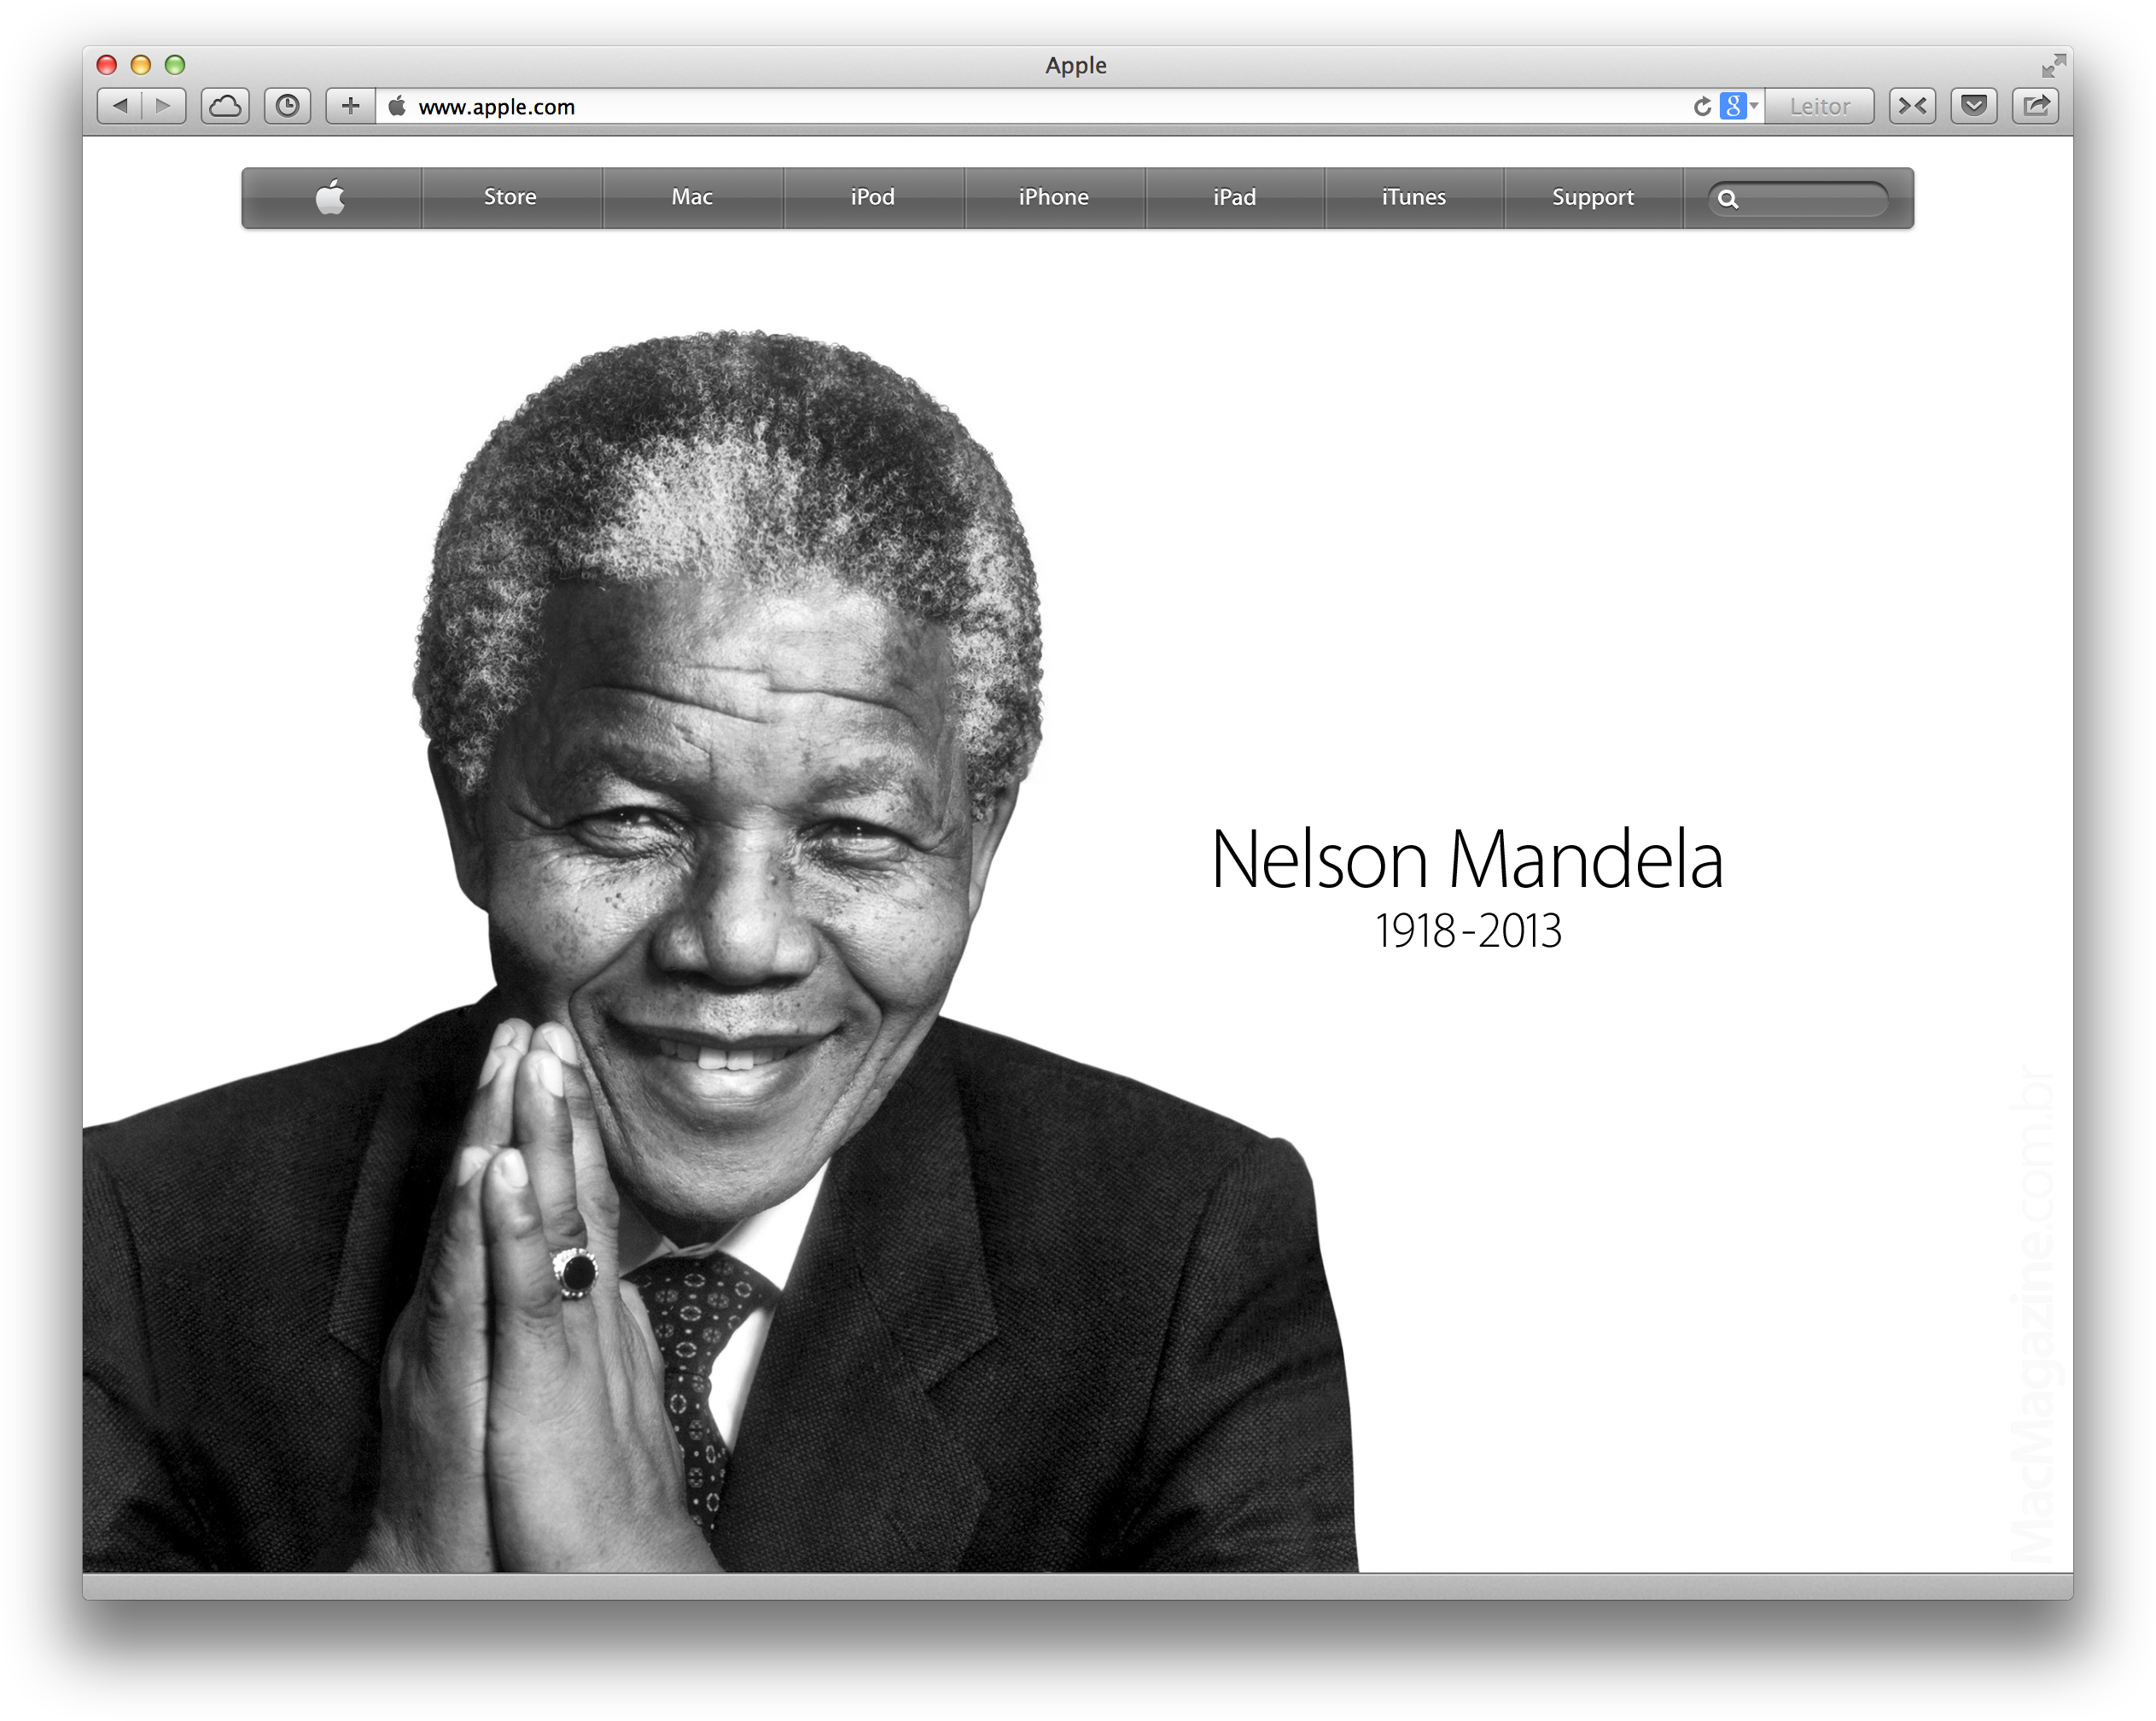 Nelson Mandela no Apple.com